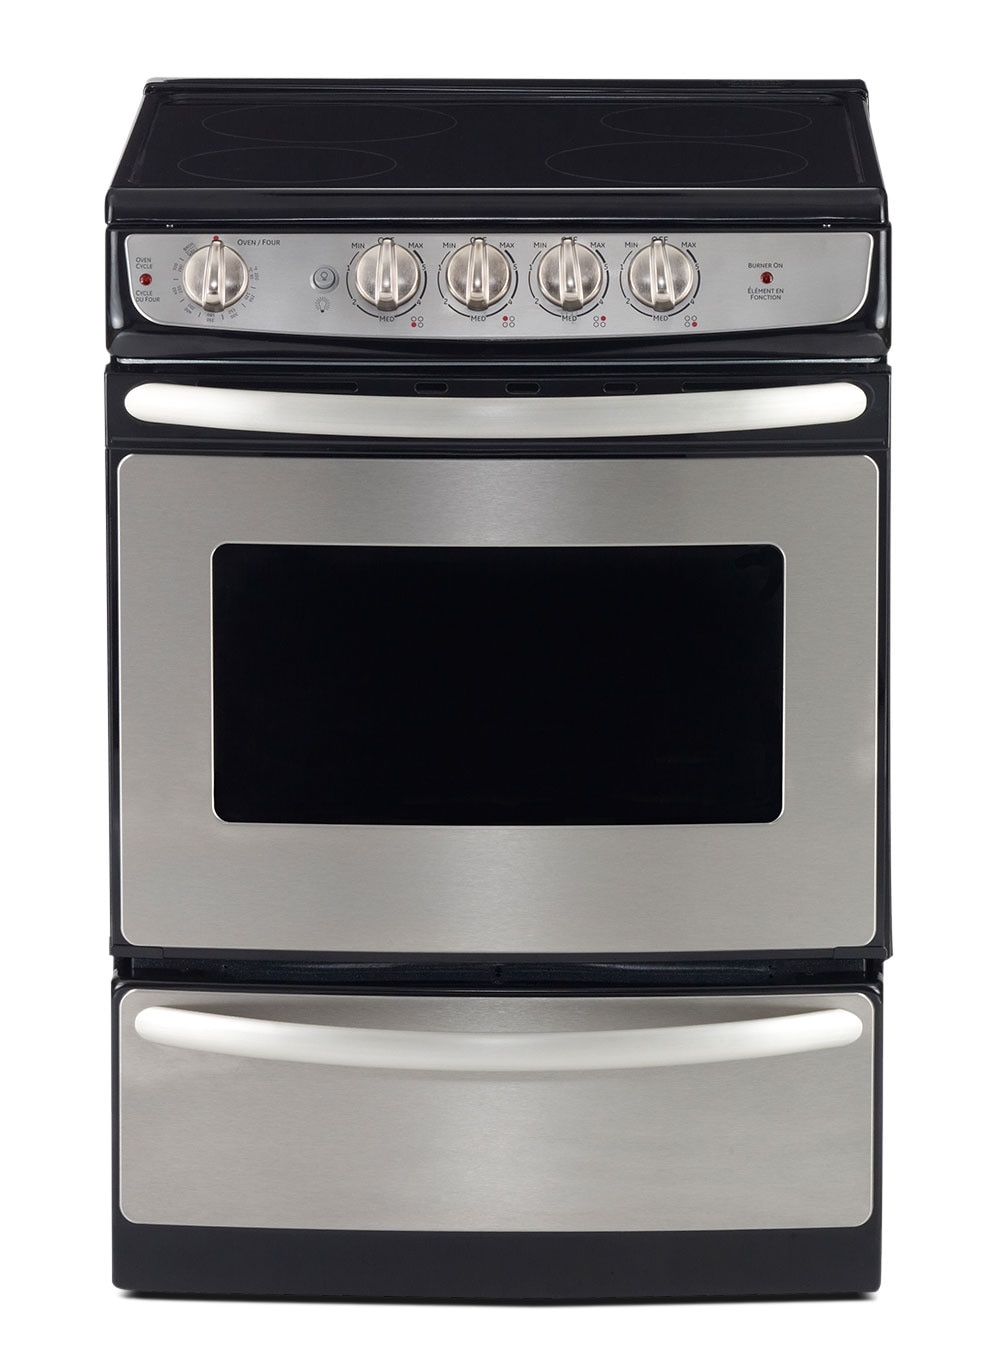 GE Stainless Steel Slide-In Electric Range (3.0 Cu. Ft.) - JCAS445SVSS